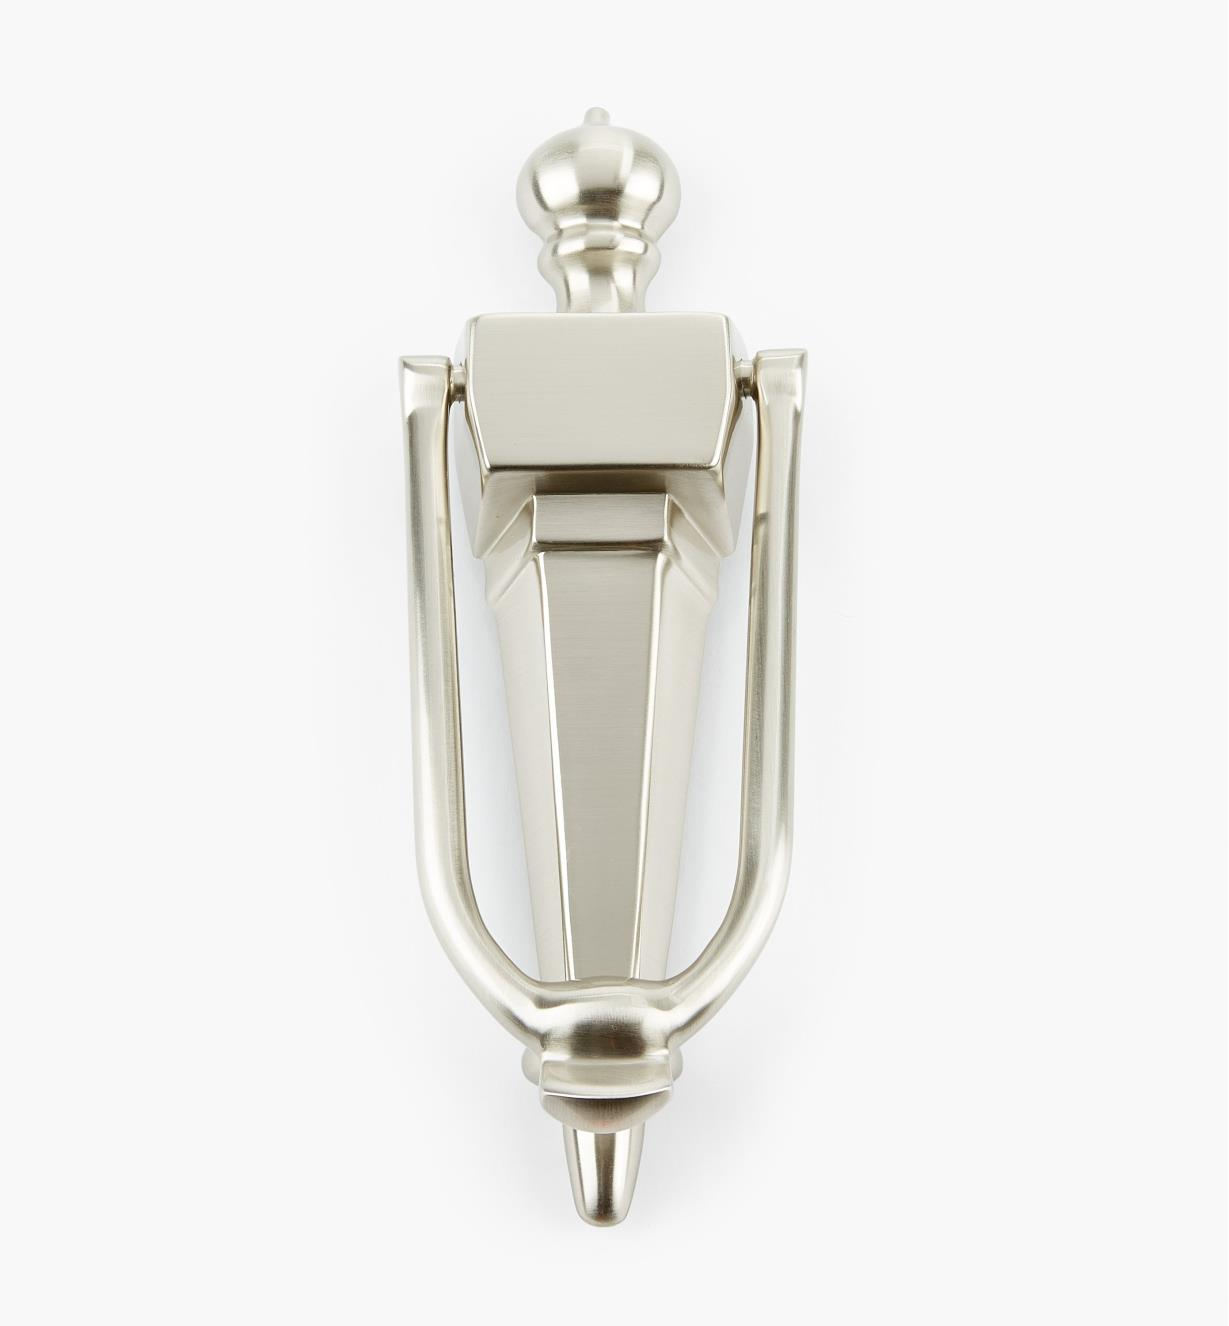 00W0830 - Satin Nickel Century Door Knocker